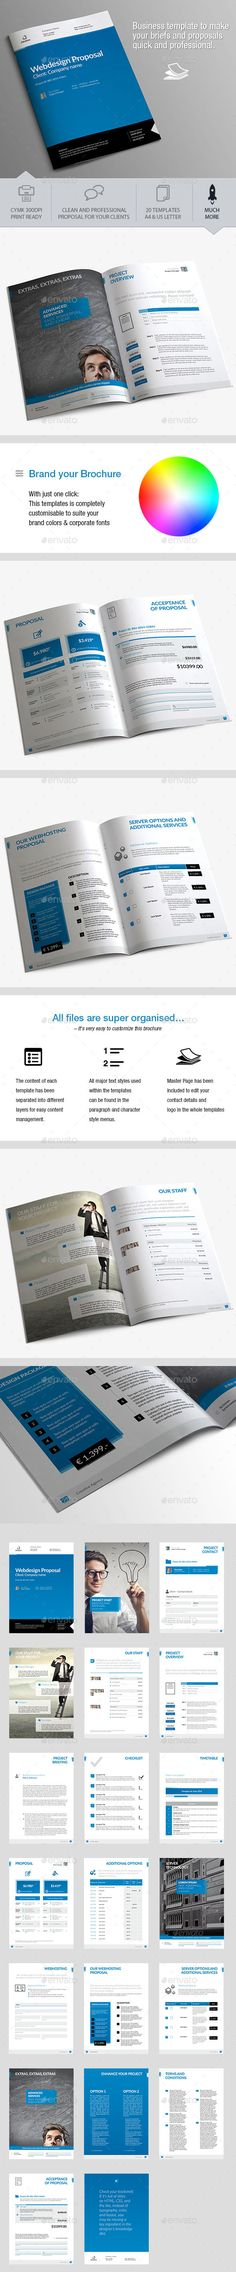 Pin by Karla Morloy on Templates Pinterest Proposals, Proposal - professional proposal templates